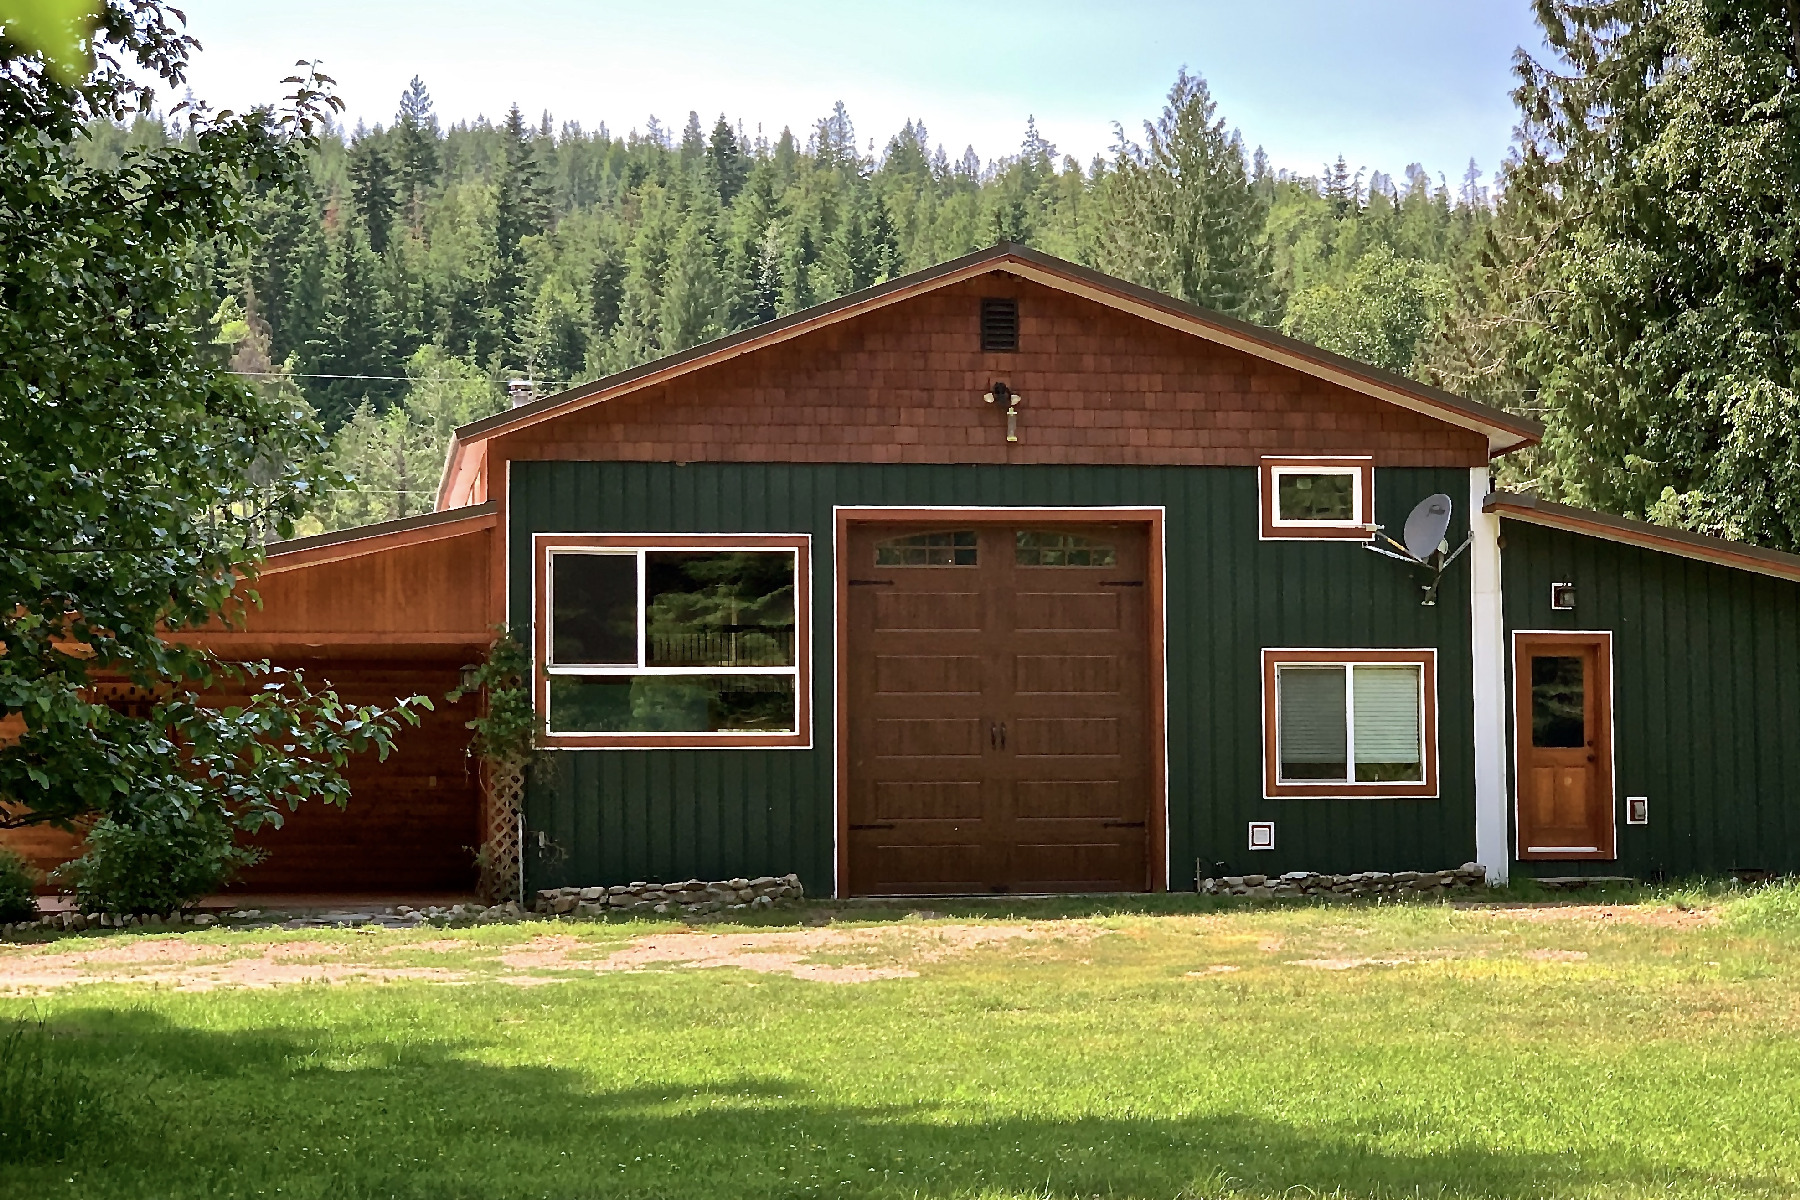 Single Family Homes for Active at Serene Setting, Spring Creek, Acreage! 210 Shadow Valley Lane Clark Fork, Idaho 83811 United States